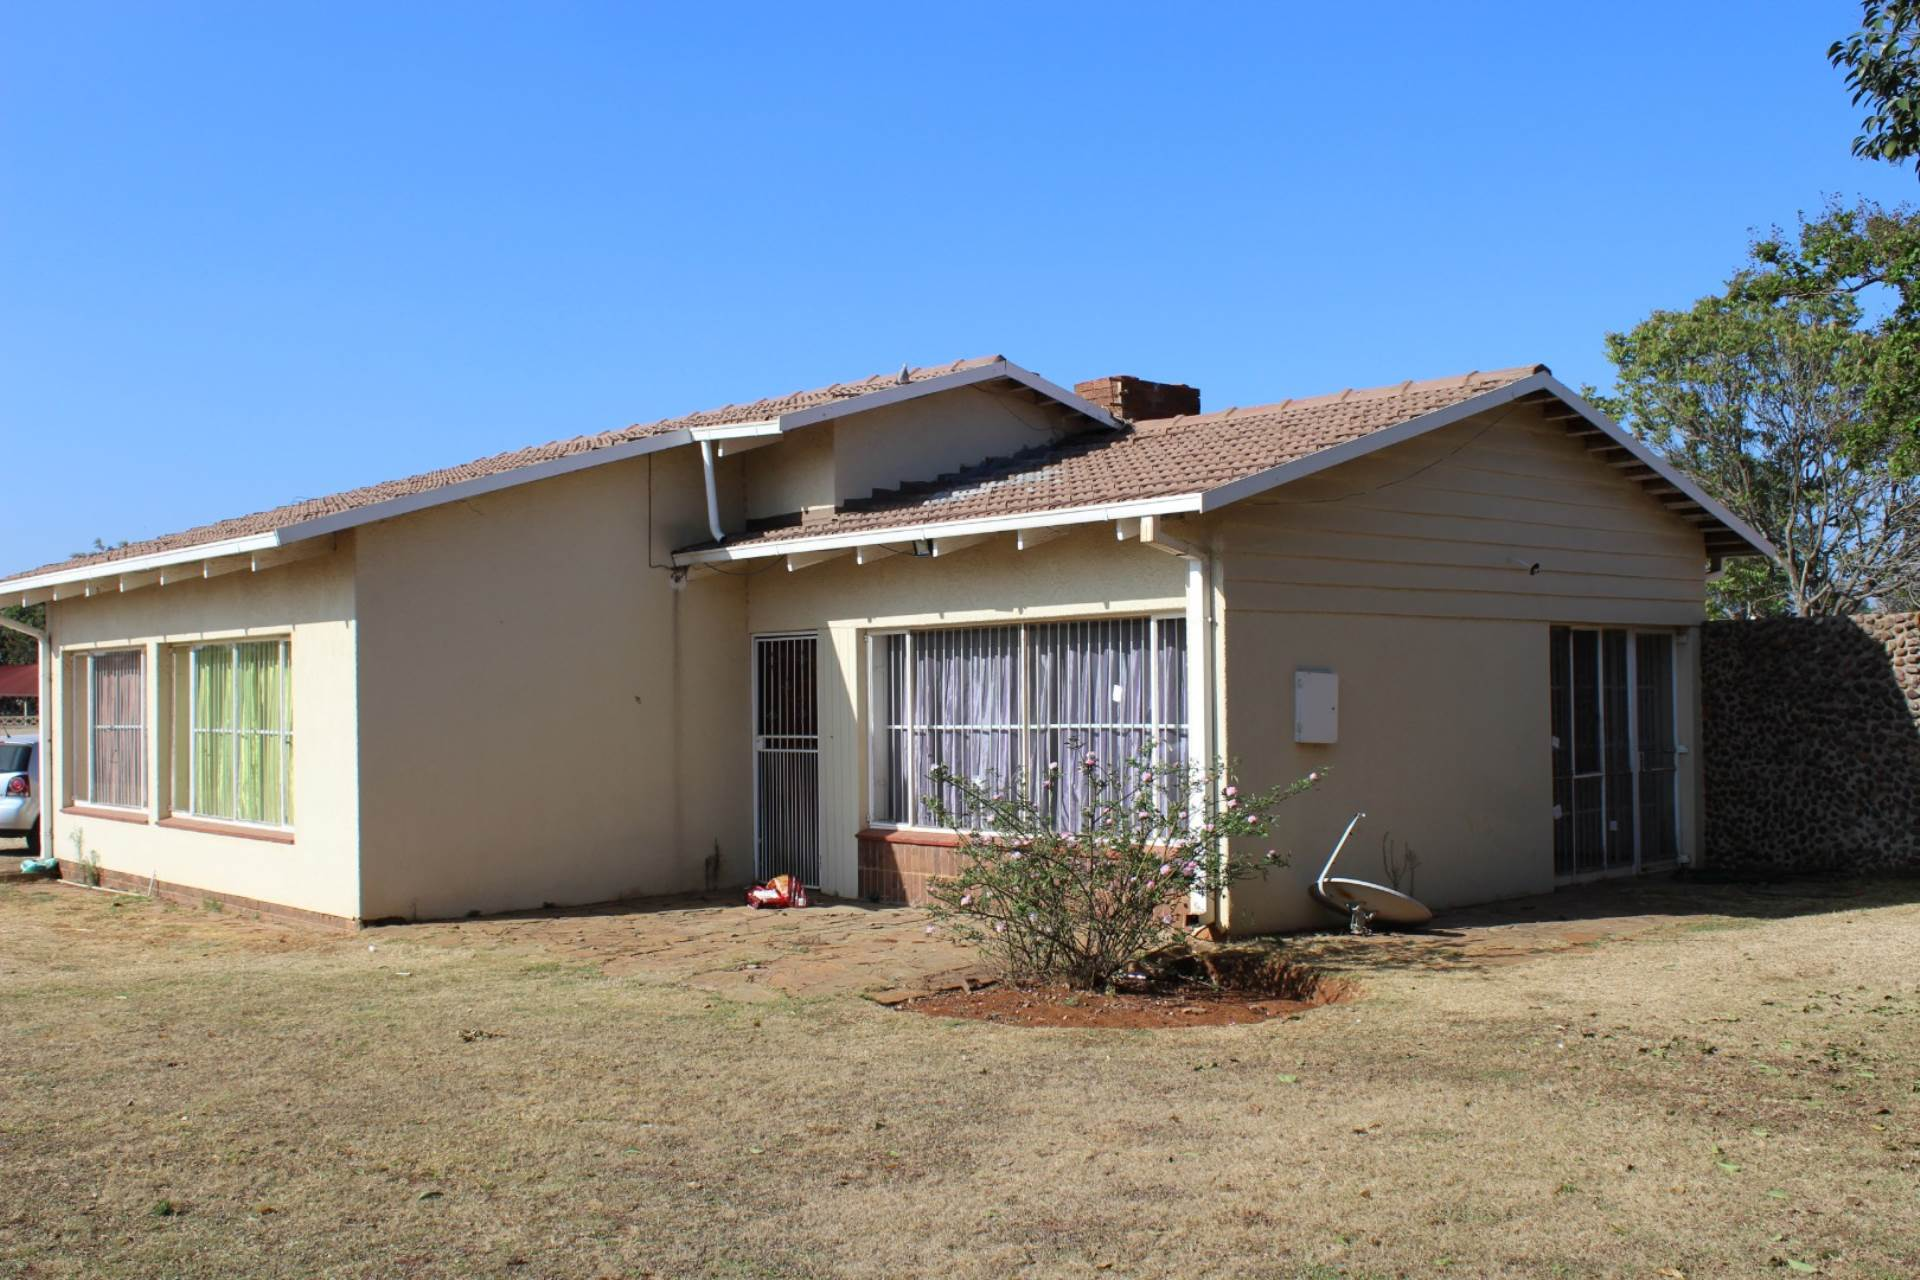 3 BedroomHouse For Sale In Casseldale